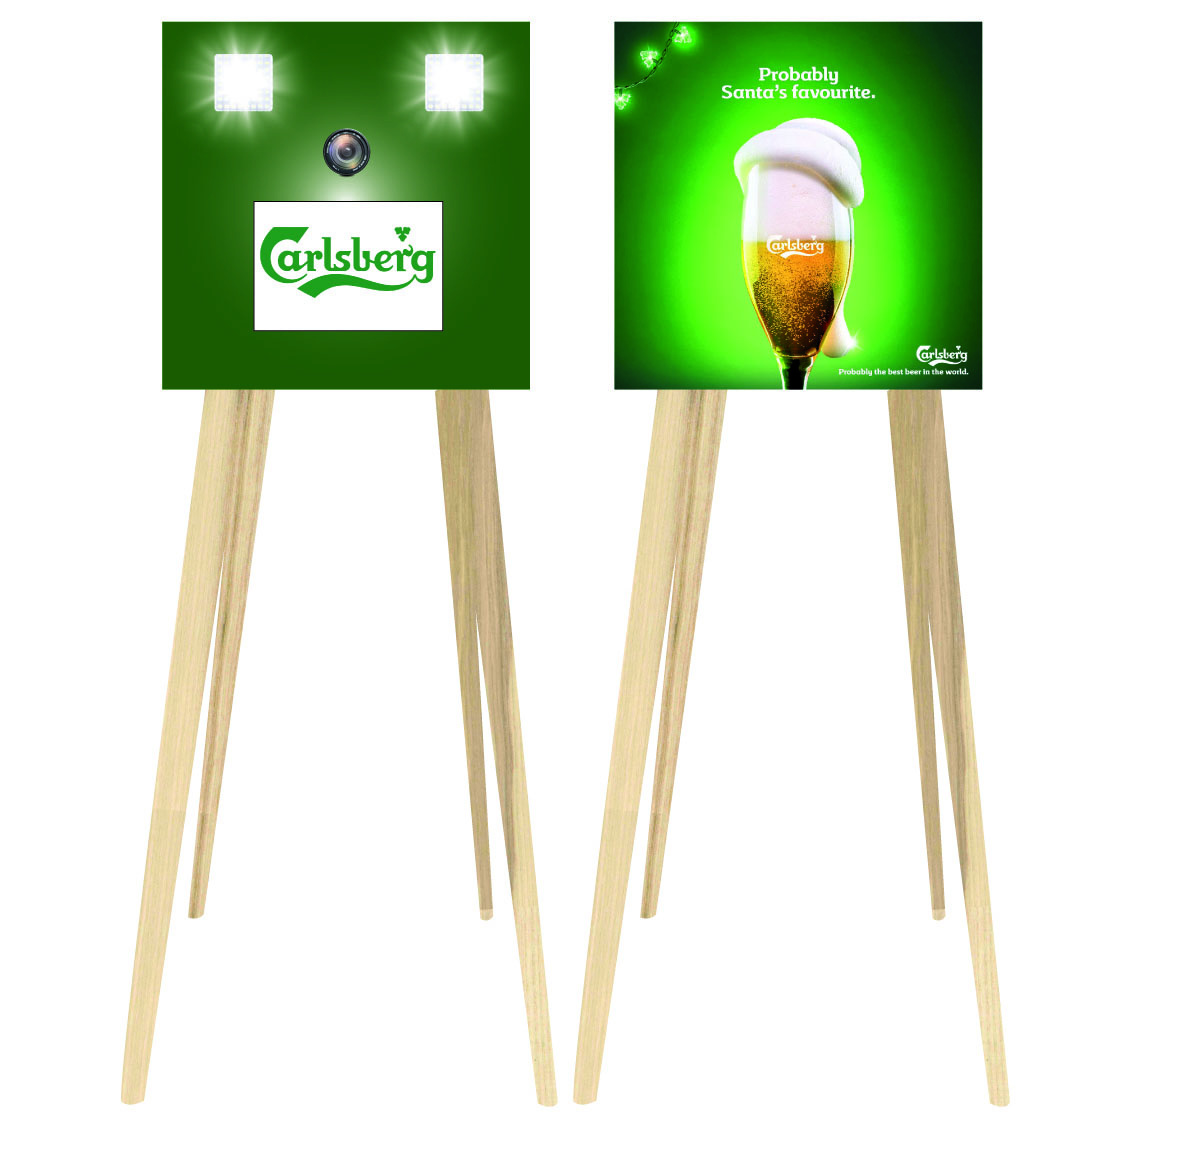 BOX CARLSBERG 20X20 copie